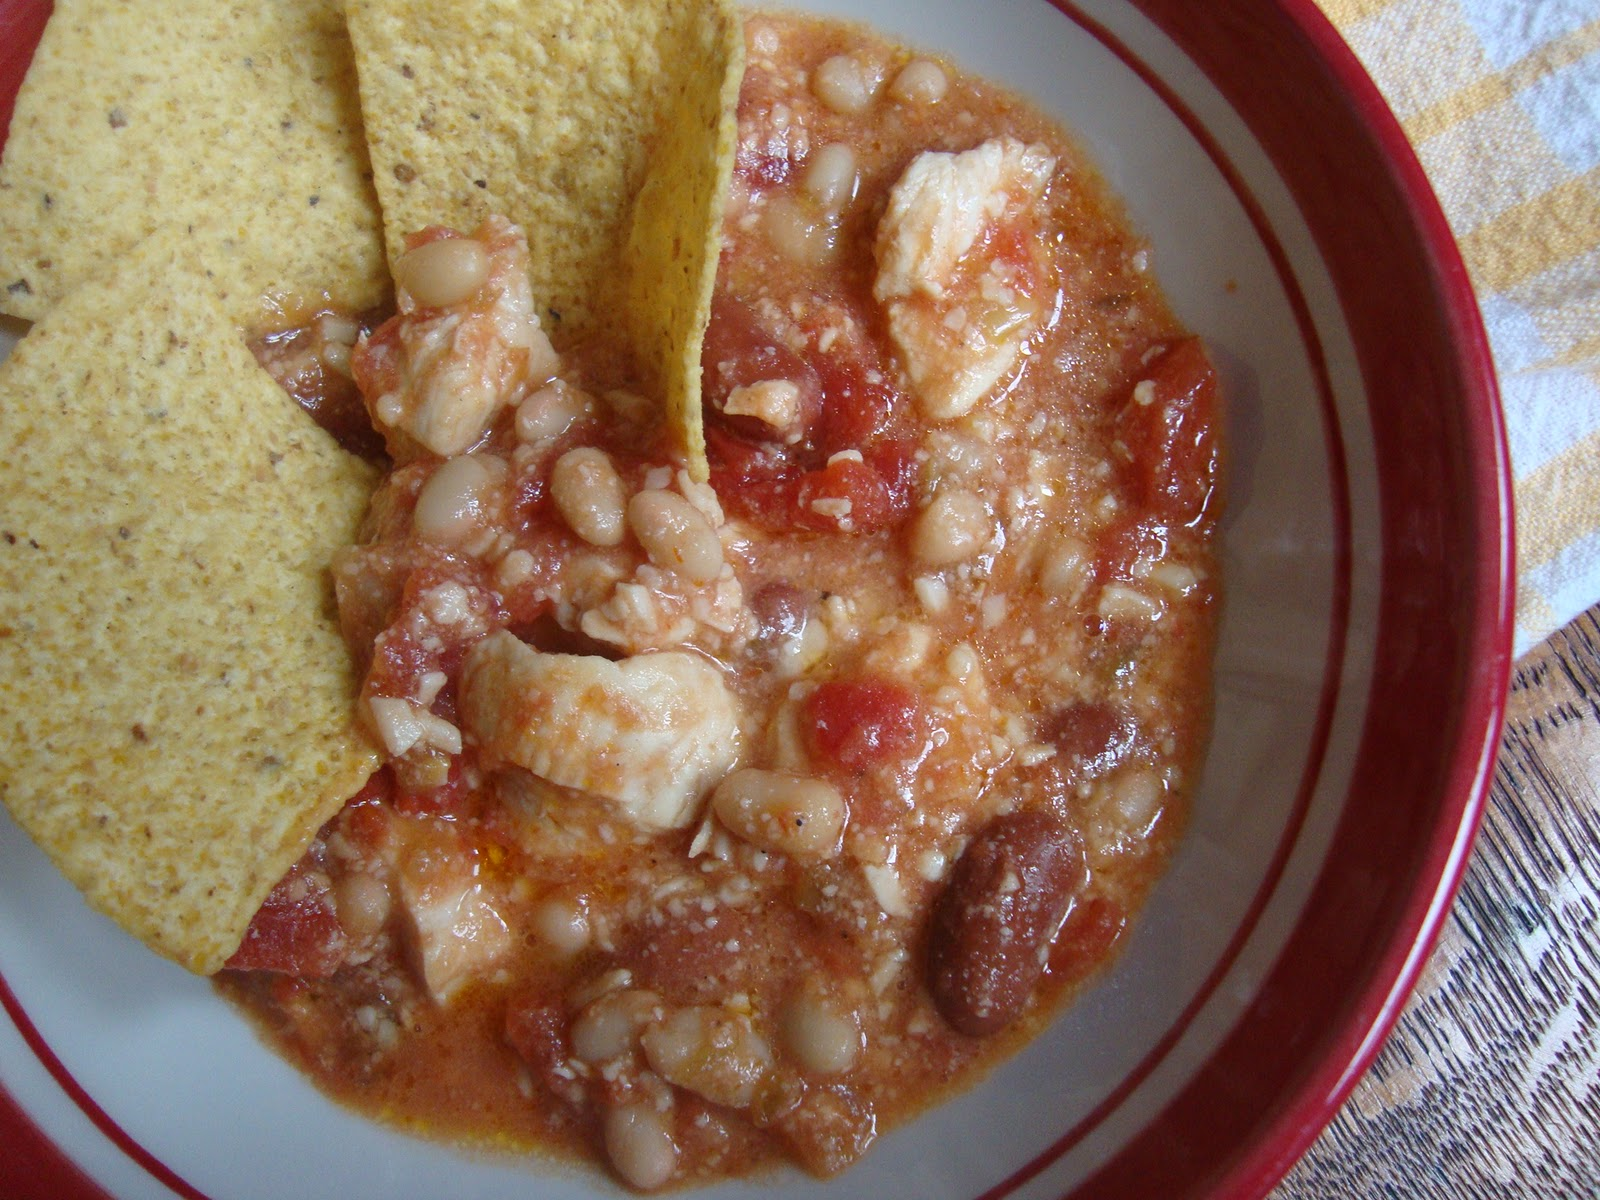 ... and Creating with Avril: Super EASY and Super YUMMY Chicken Chili